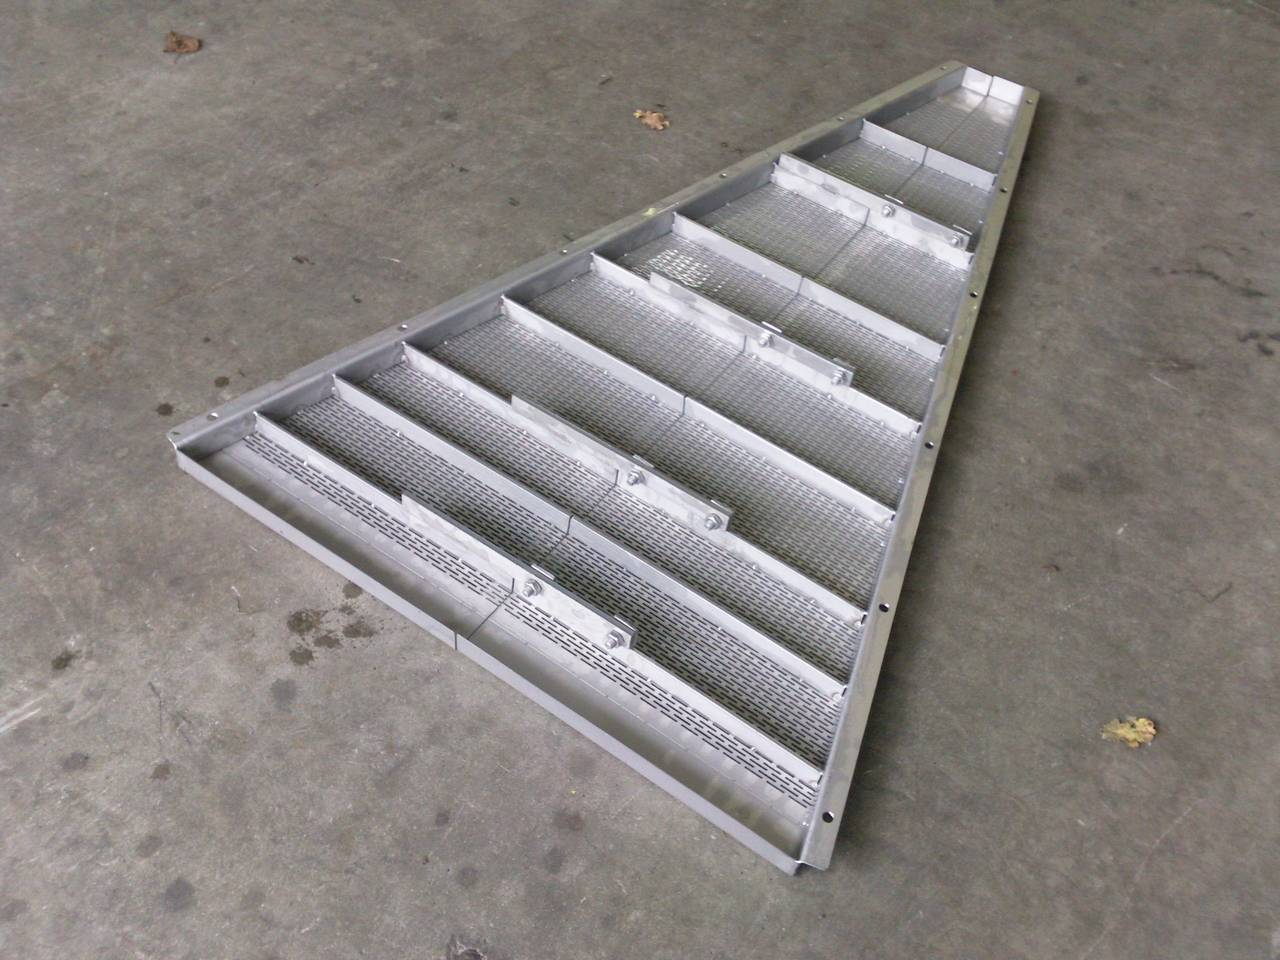 GRILLE DE DECUVAGE INOX DEMONTABLE VOLUMETAL 49 PUY SAINT BONNET